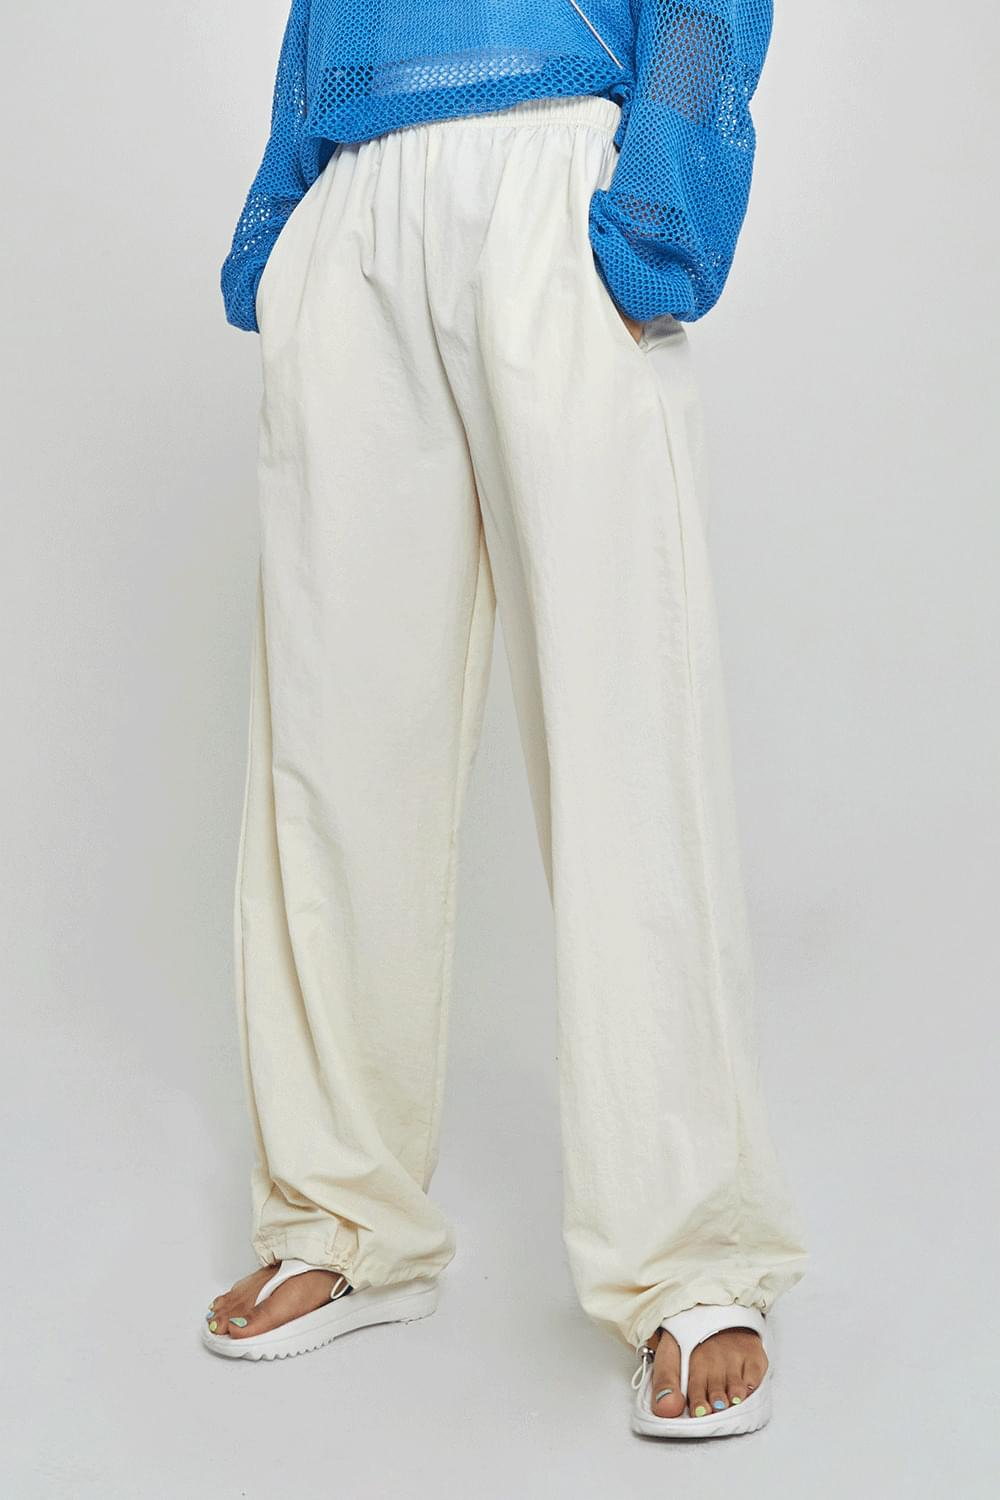 Simple string jogger or Pants